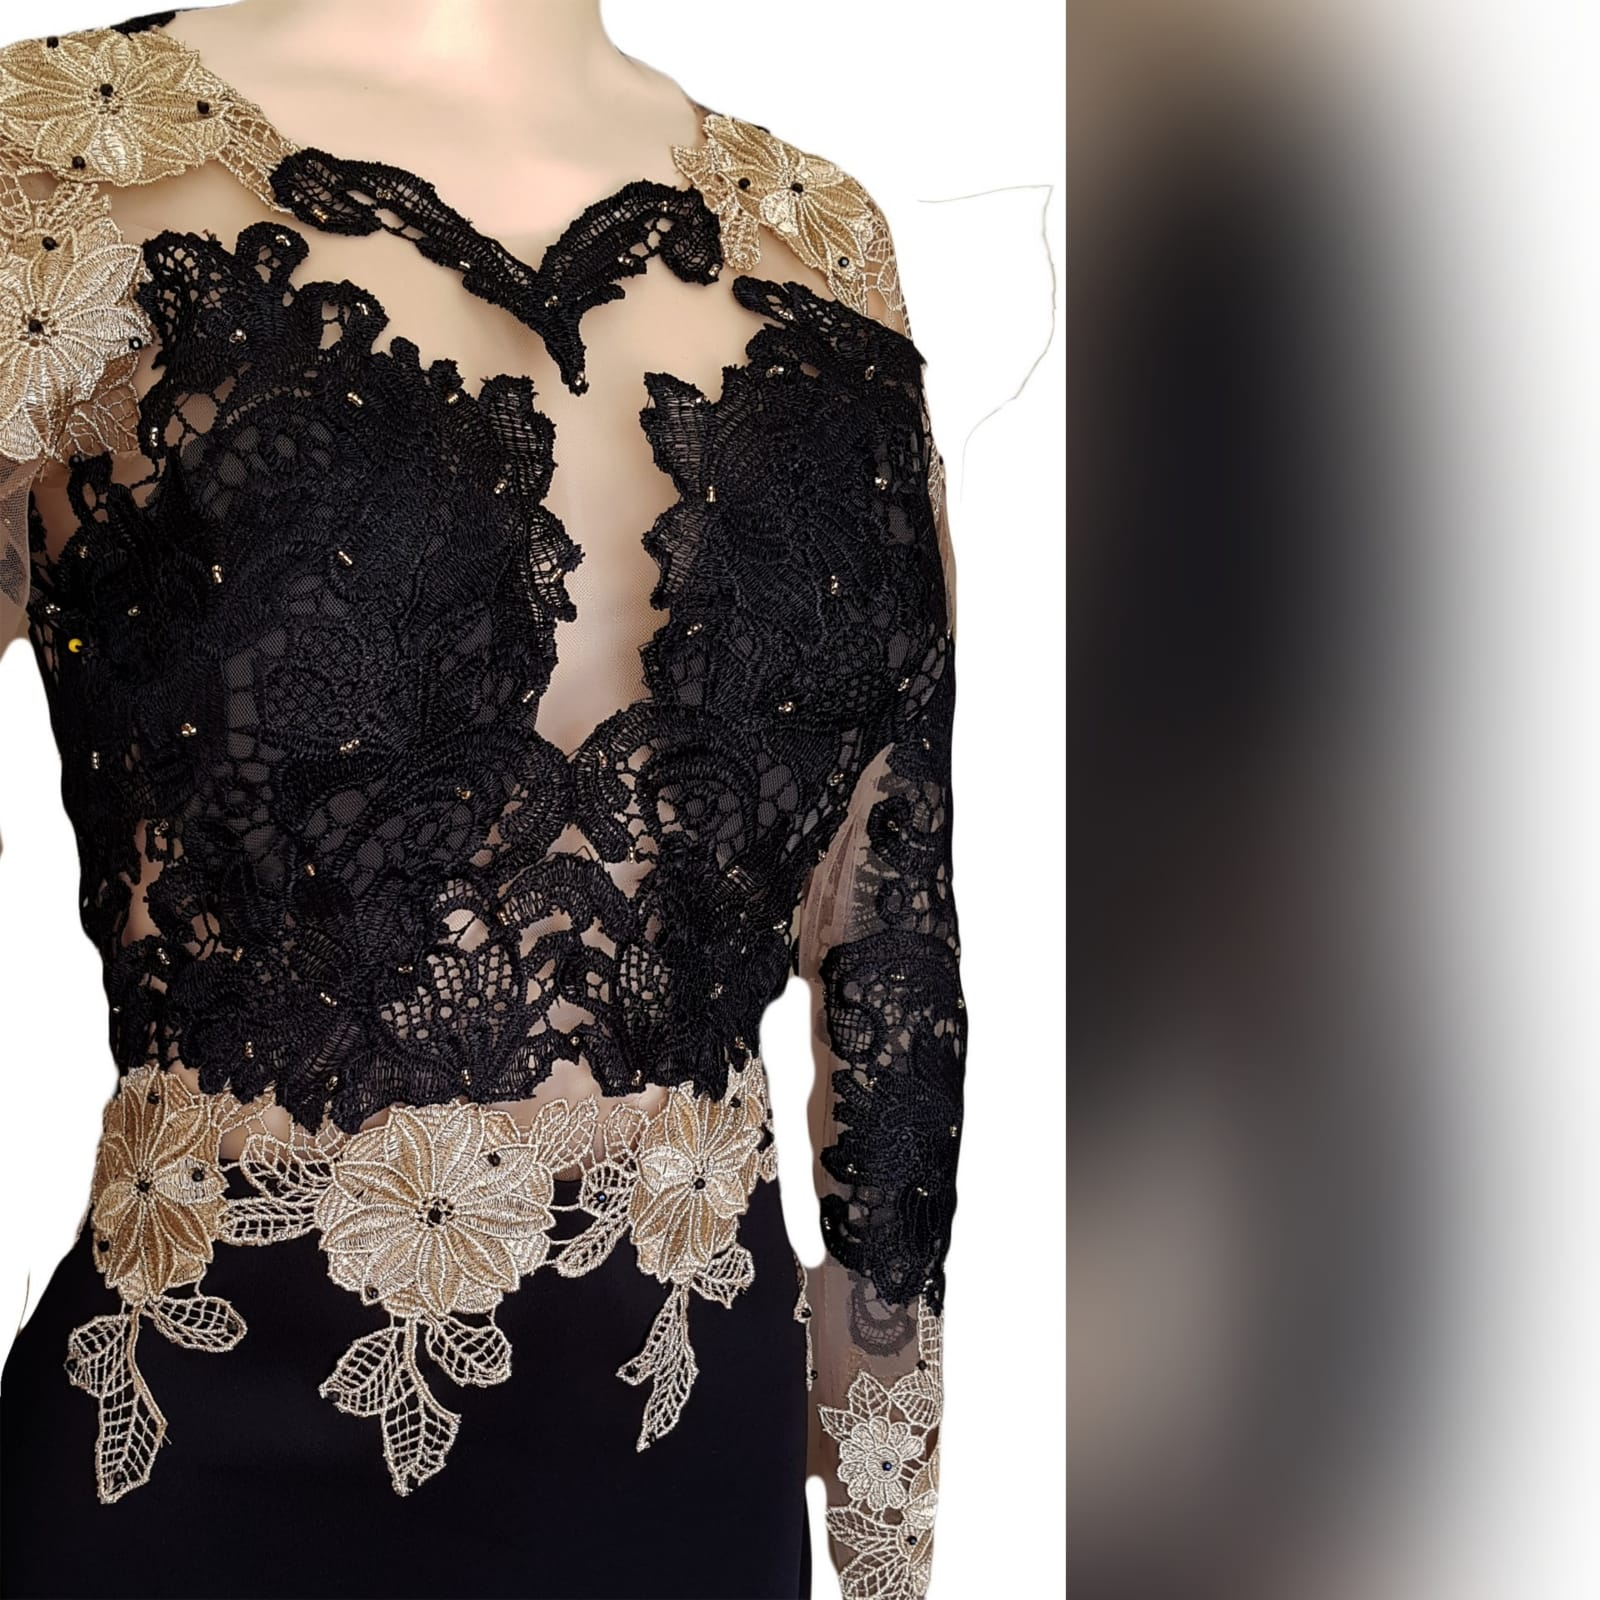 Black & gold soft mermaid prom dress 3 black & gold soft mermaid prom dress with an illusion lace bodice and long sleeves. With an open back and a train. Lace detailed with beads.